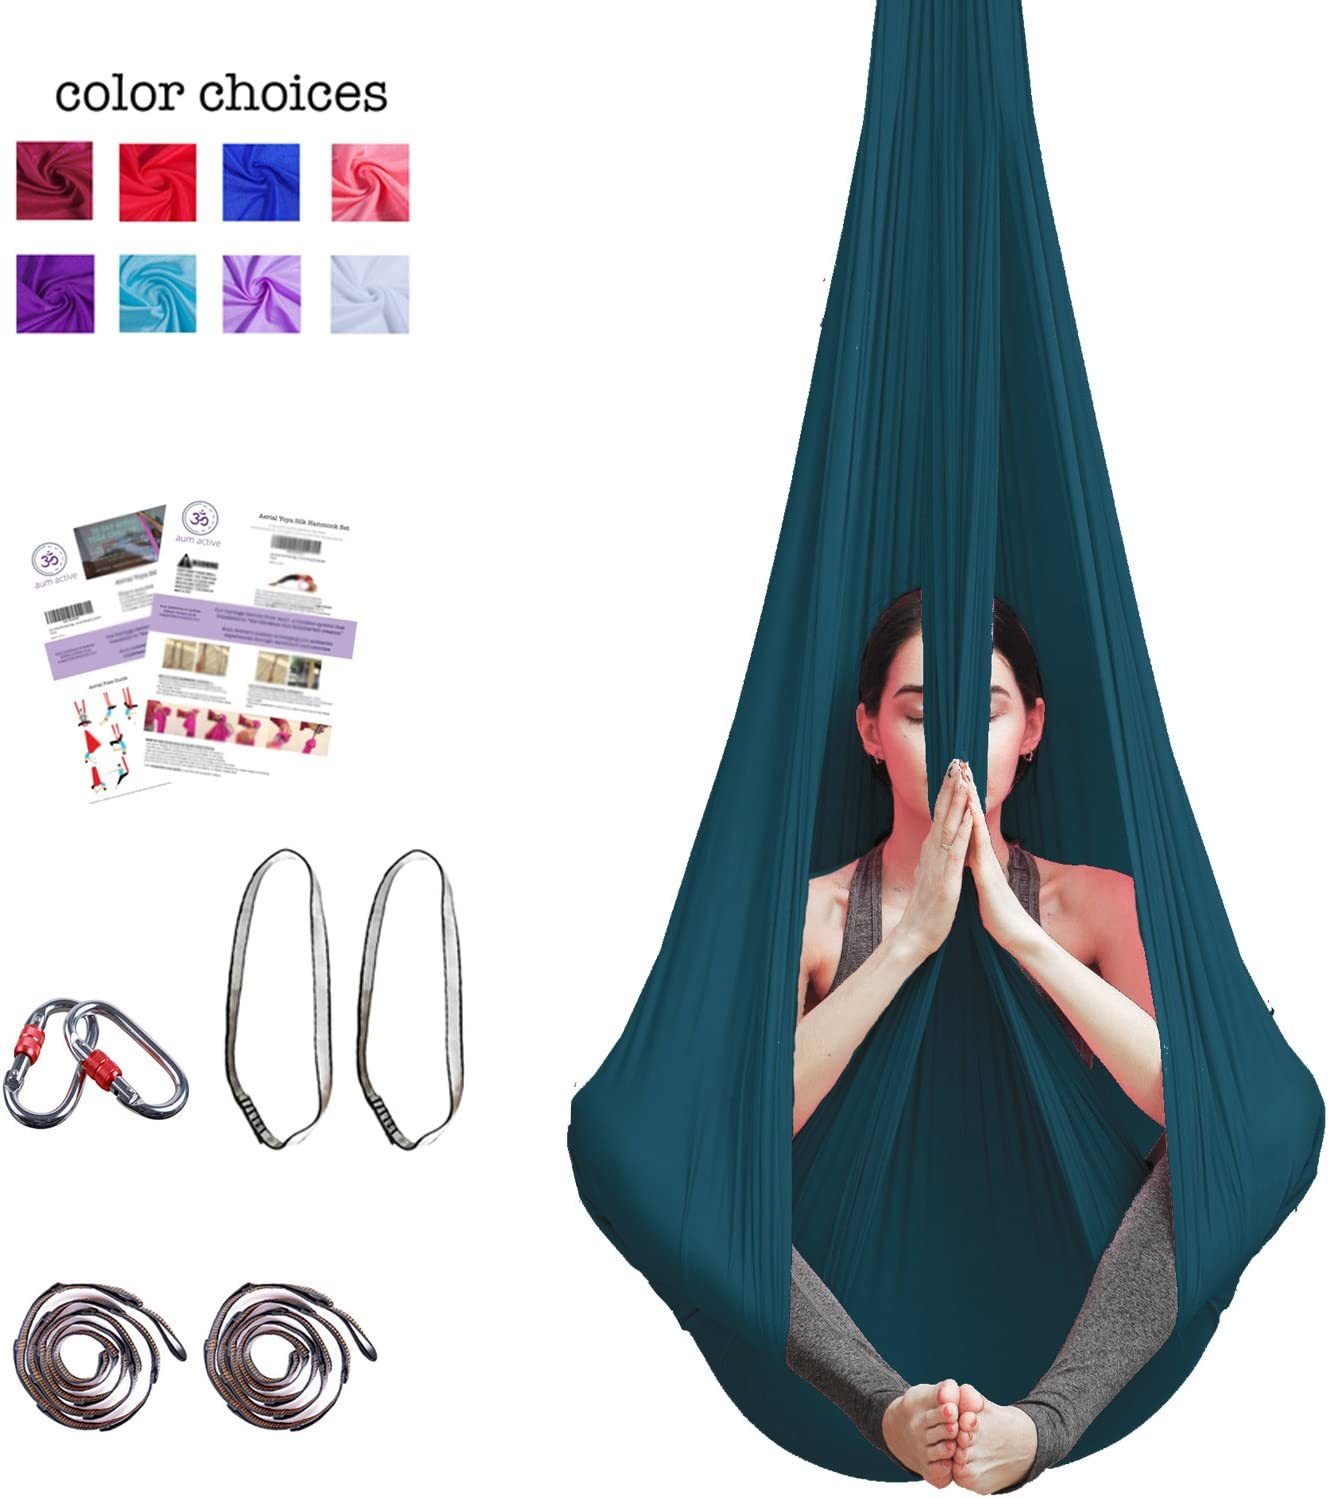 Aerial Yoga Hammock – Premium Aerial Silk Yoga Swing for Antigravity Yoga, Inversion Exercises, Improved Flexibility Core Strength – Extension Straps, Carabiners and Pose Guide Included